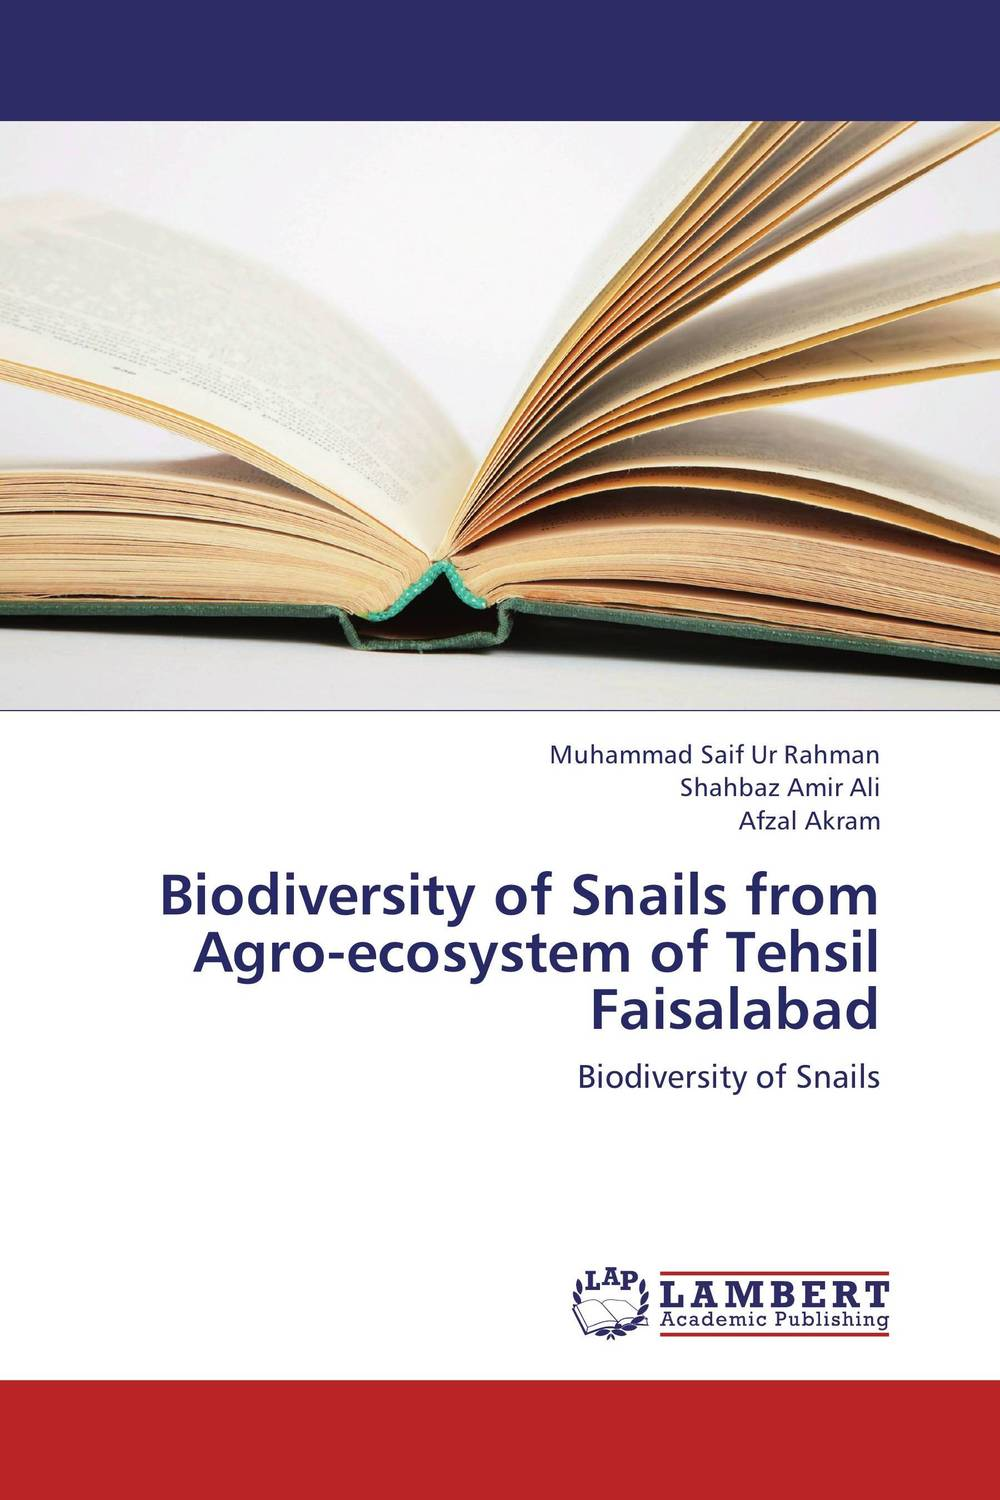 Biodiversity of Snails from Agro-ecosystem of Tehsil Faisalabad studies on some snails associated with different crops